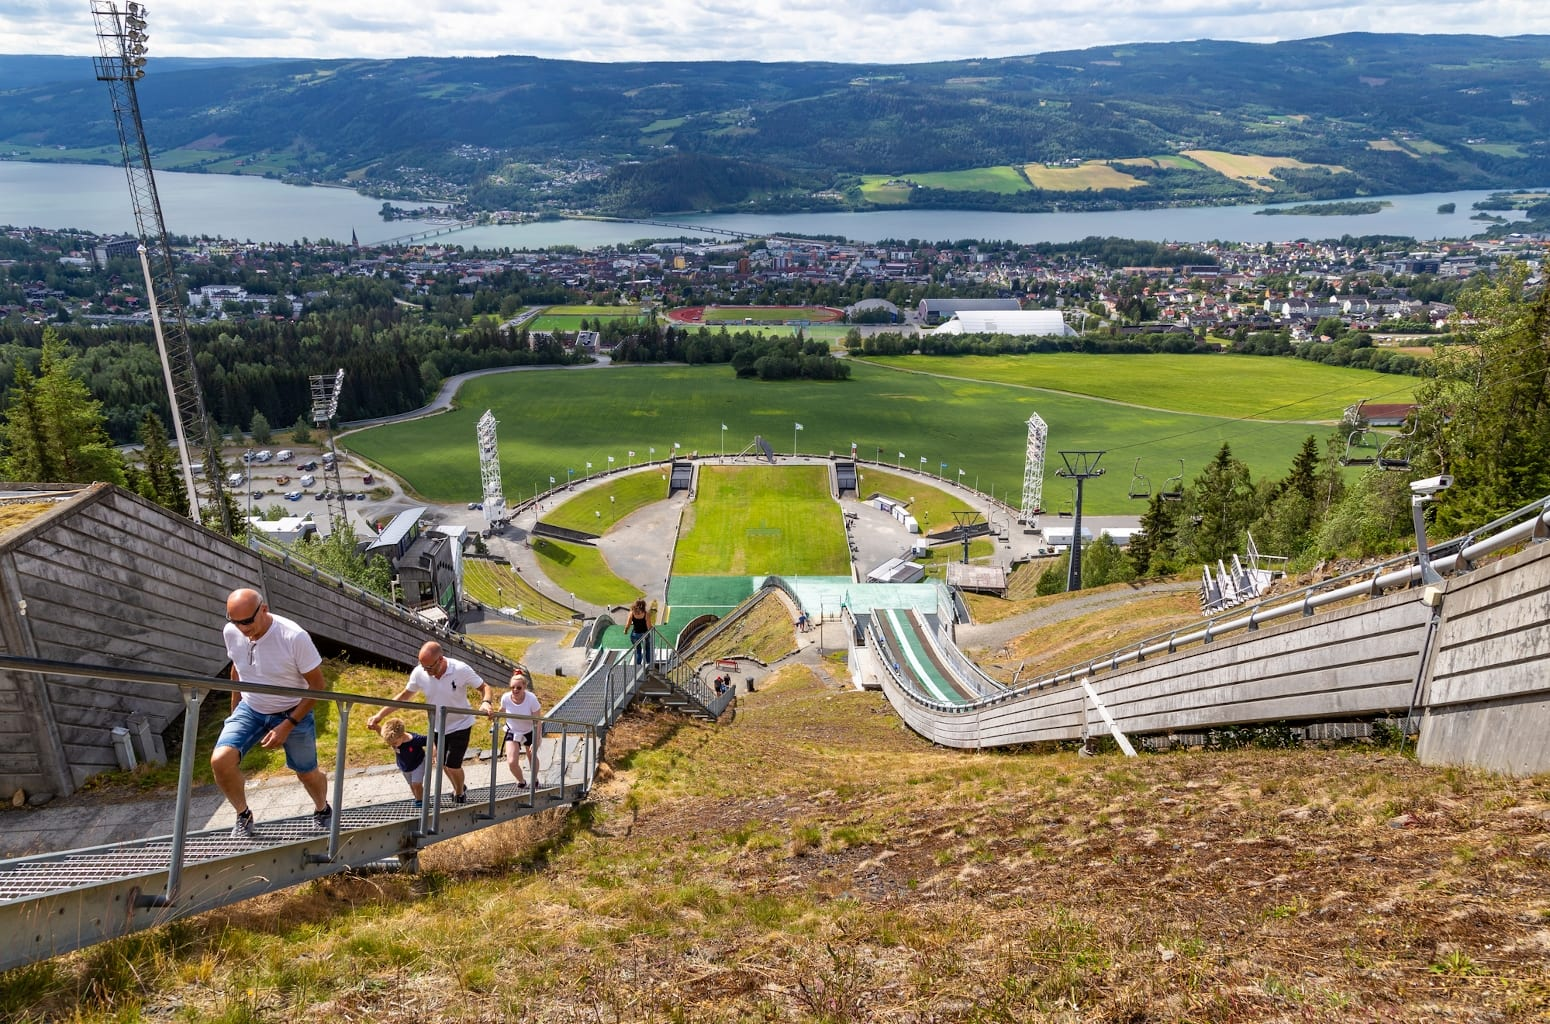 A view looking over Lillehammer from the Lysgardsbakken ski jumping arena in Lillehammer, Norway.